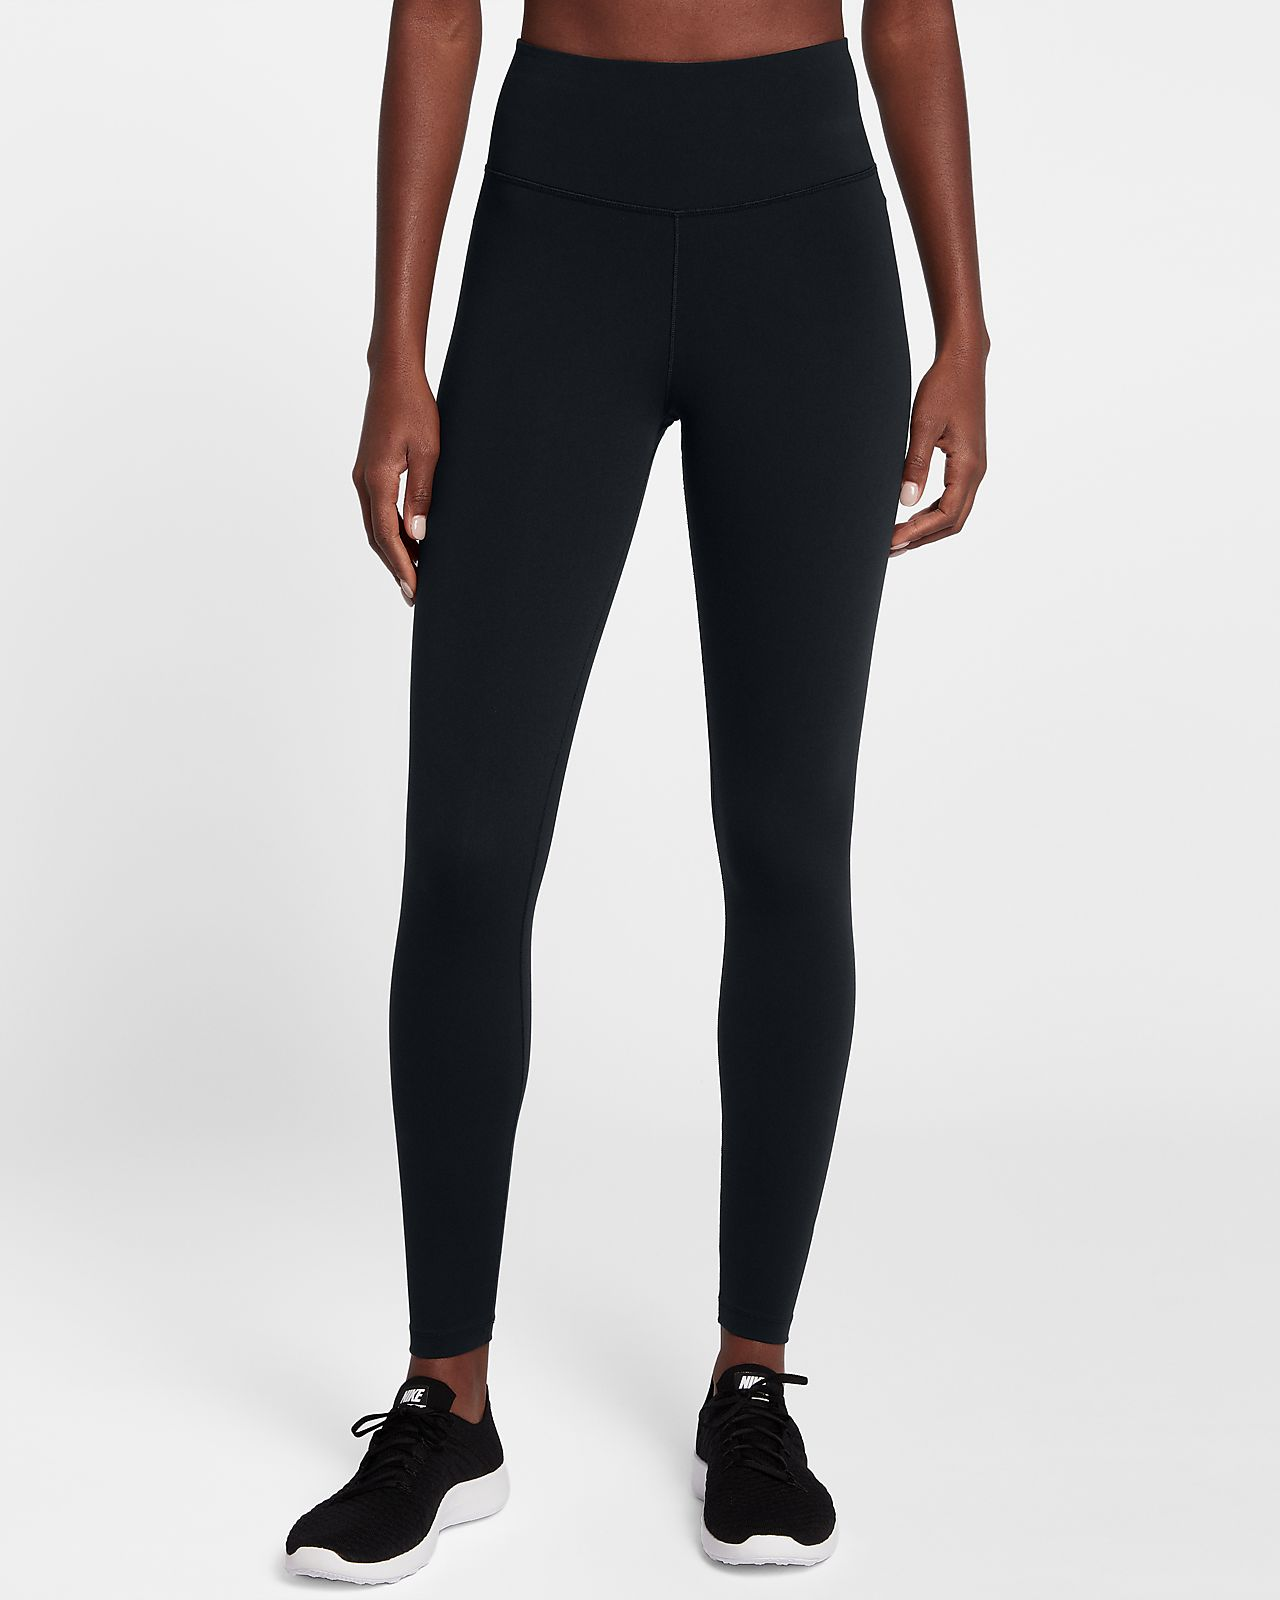 ... Nike Sculpt Lux Women's High Rise Training Tights